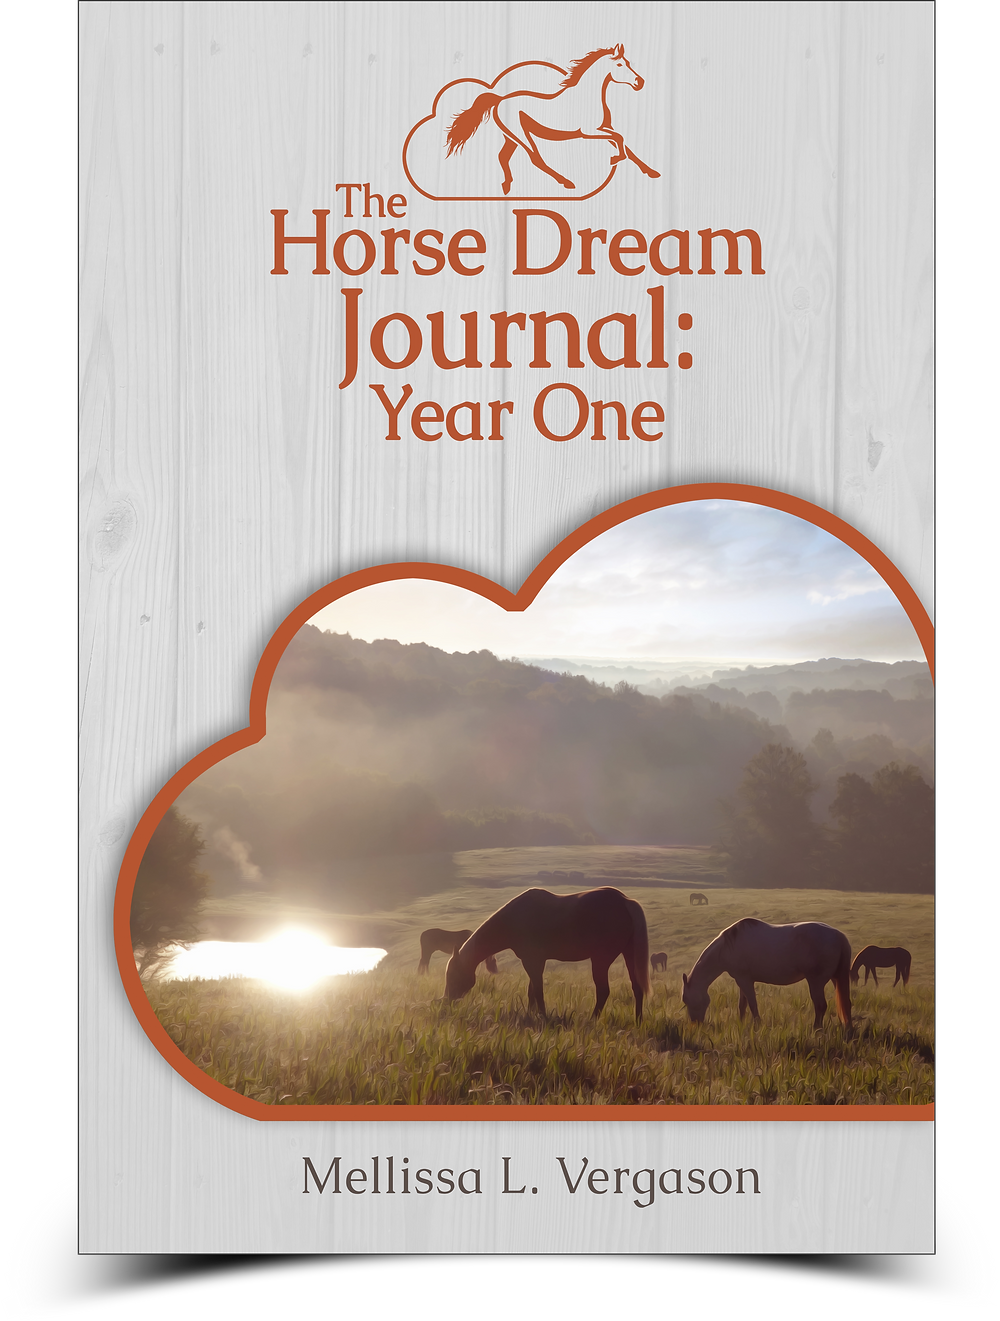 The Horse Dream Journal